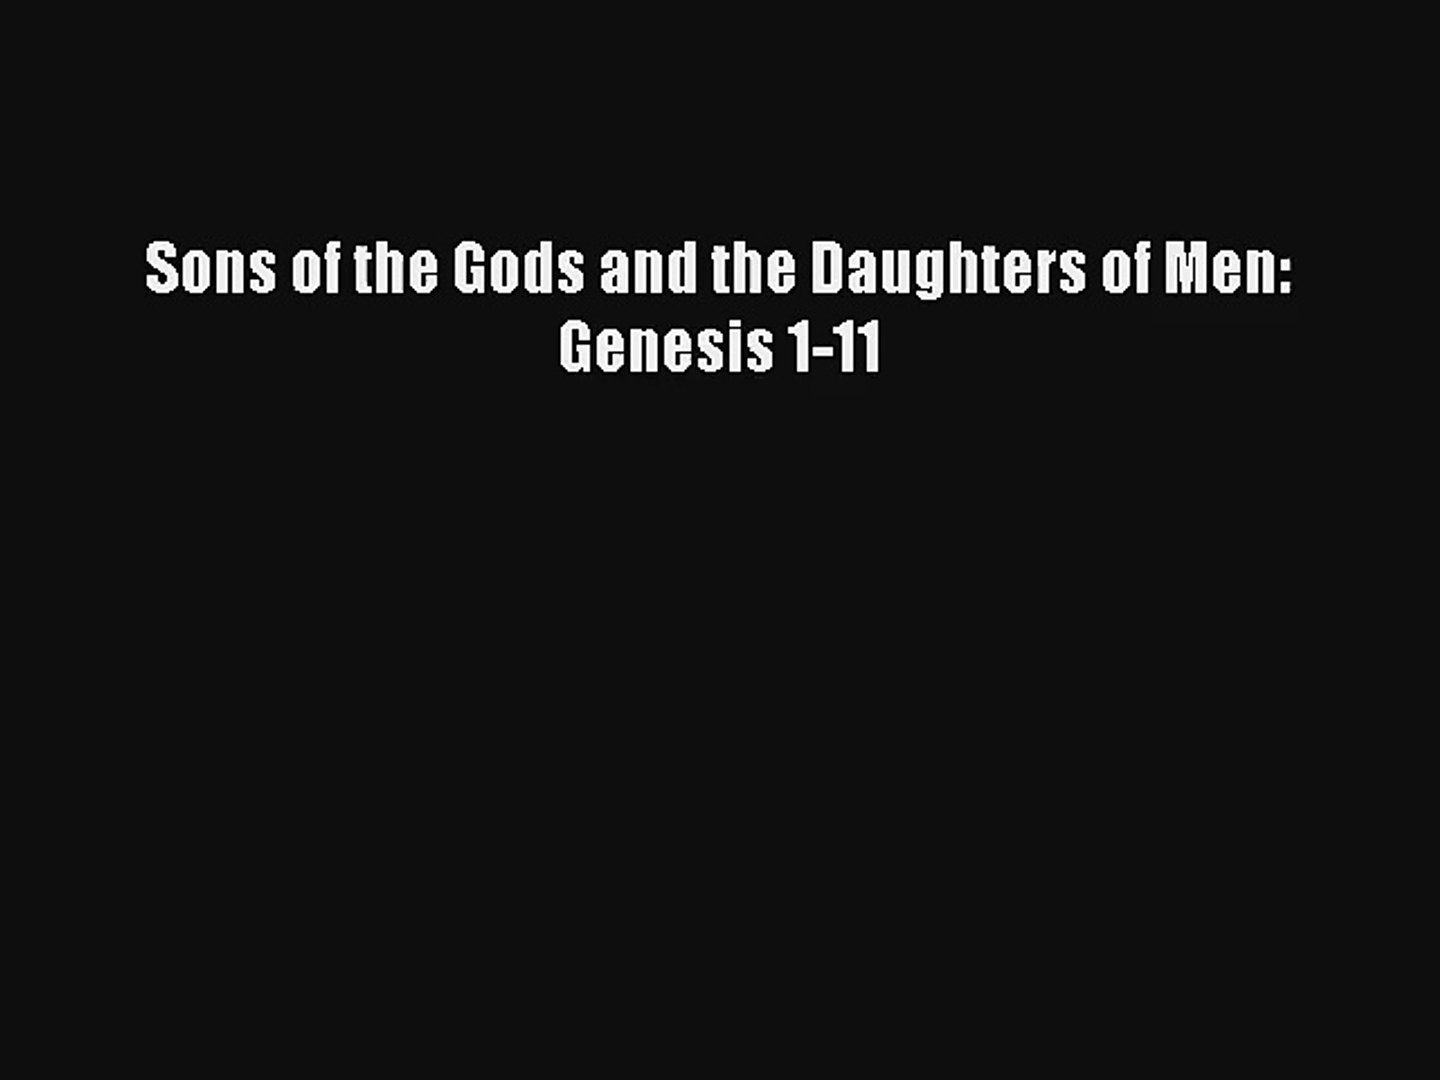 Sons of the Gods and the Daughters of Men: Genesis 1-11 Download Free